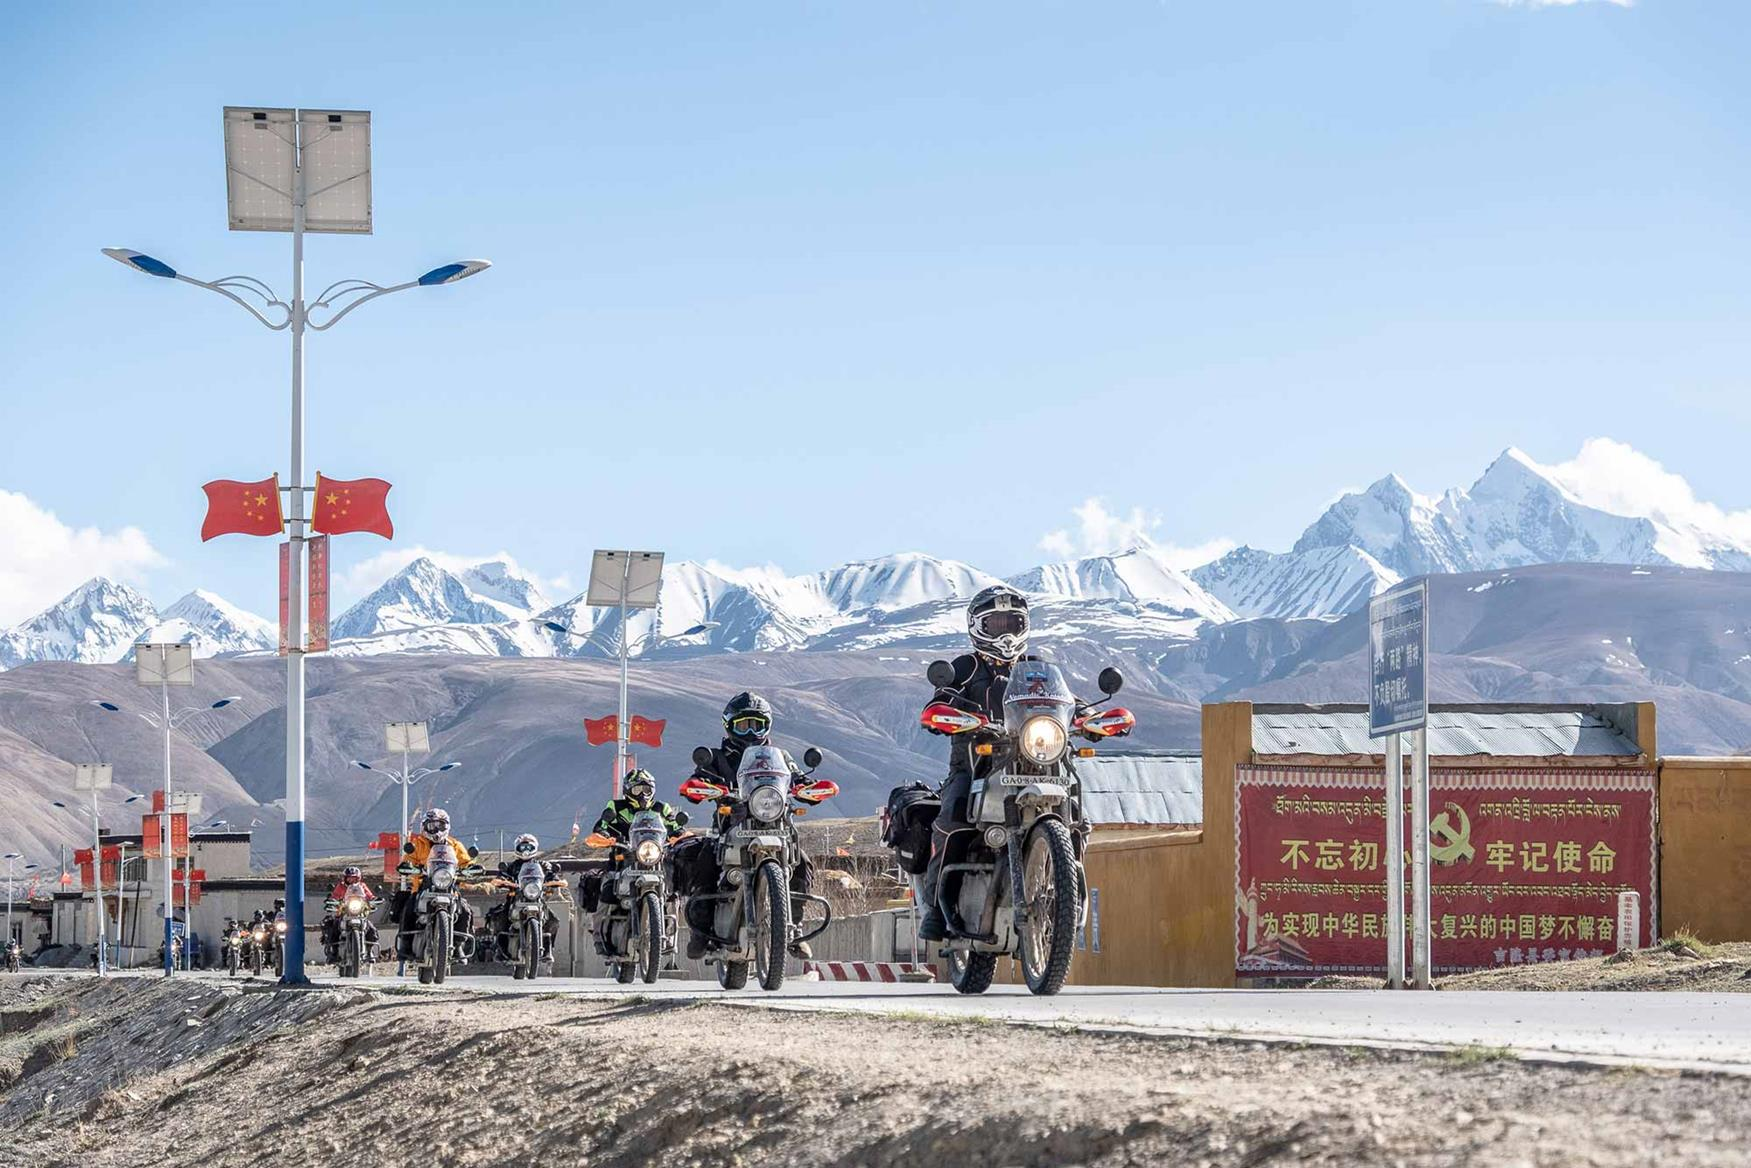 The ride takes place on Royal Enfield Himalayan